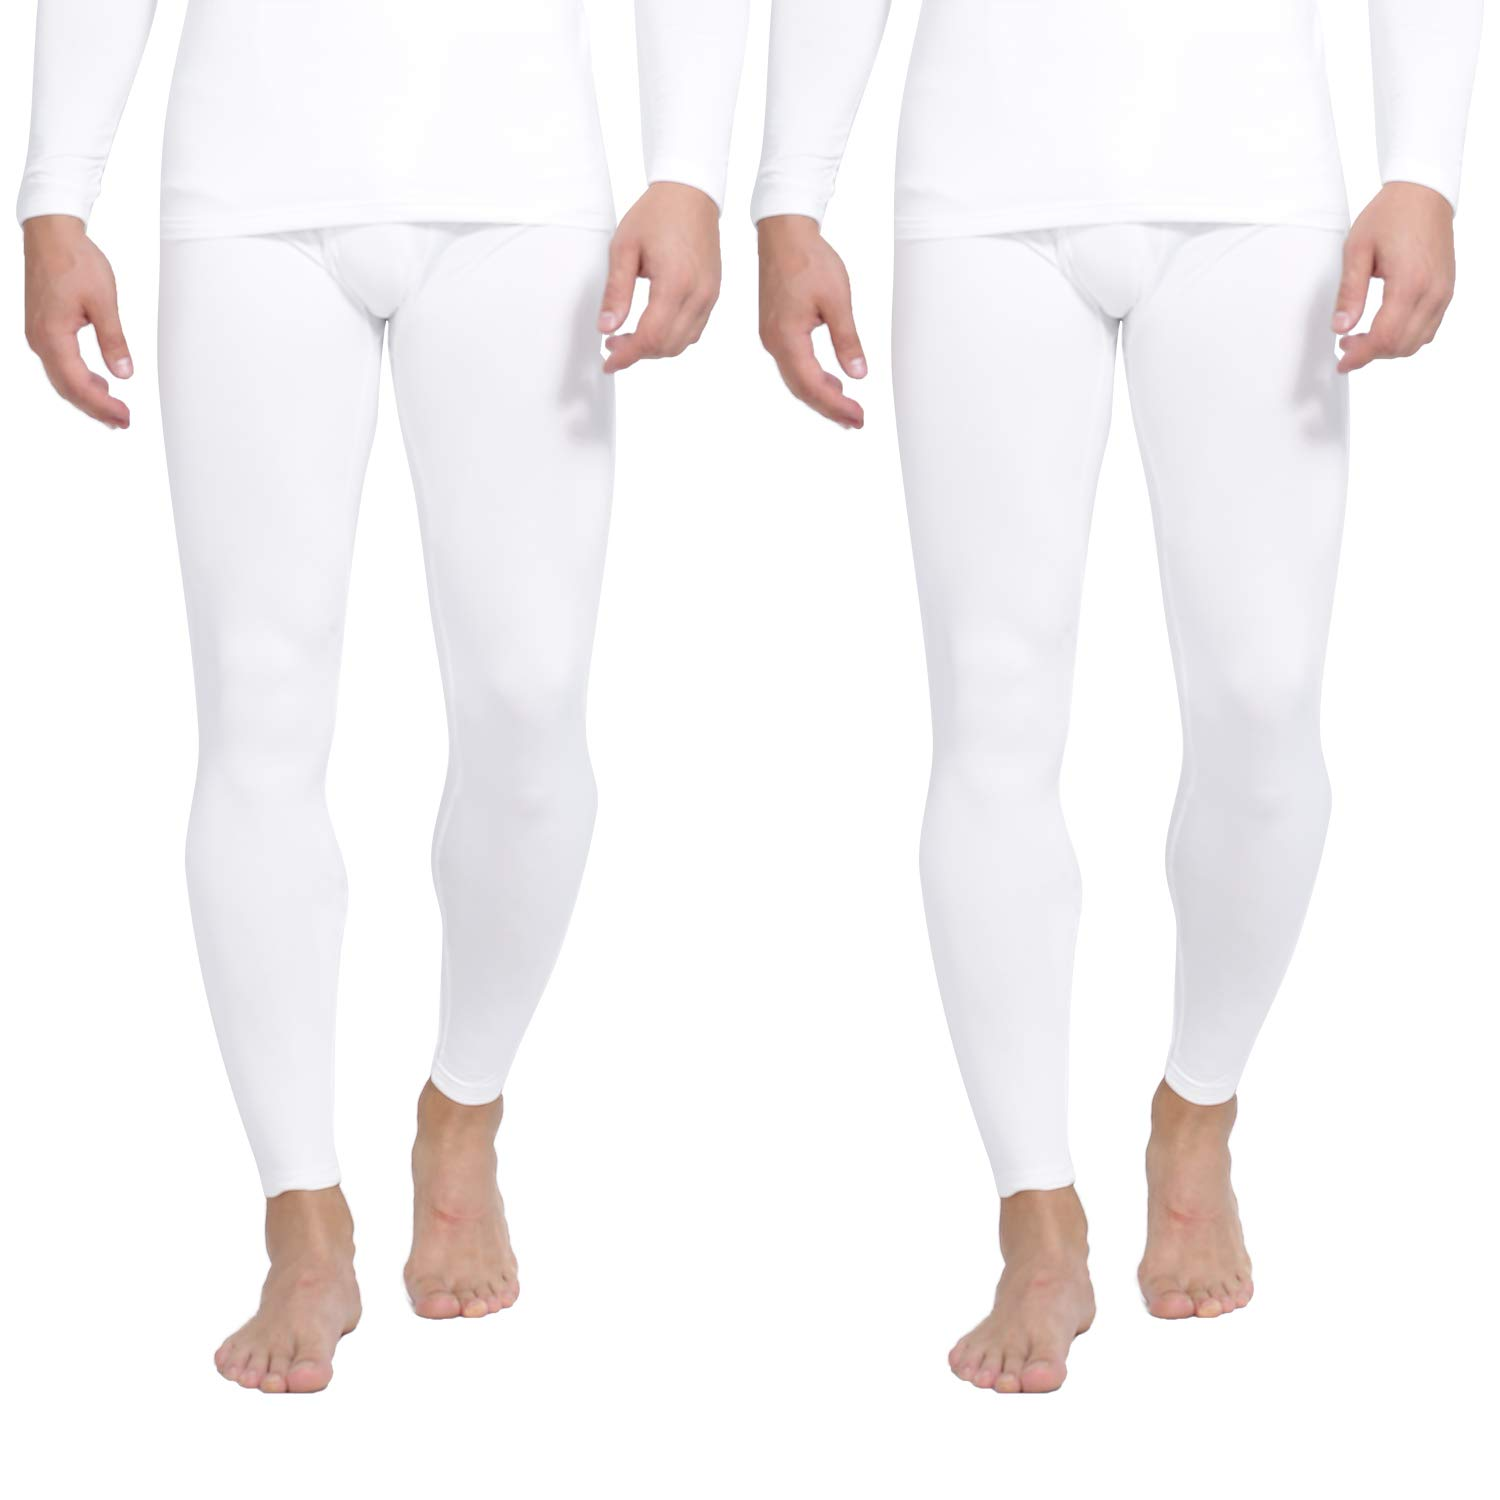 Yostylish Thermal Underwear for Men Ultra Soft Long Johns Set with Fleece Lined